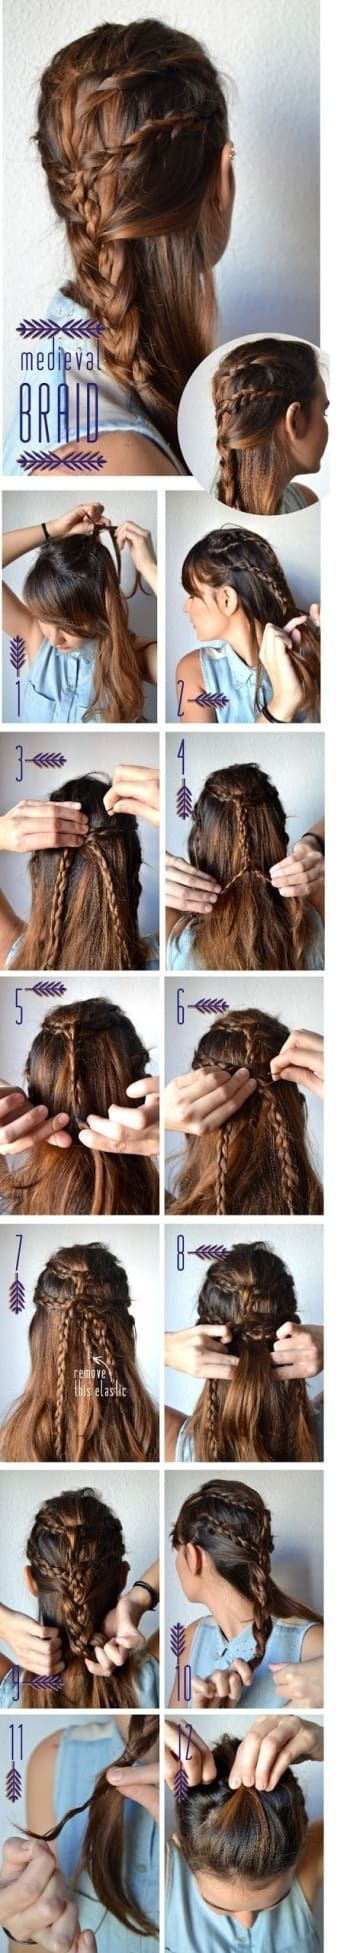 19 Hair Ideas To Step Up Your Halloween Costume